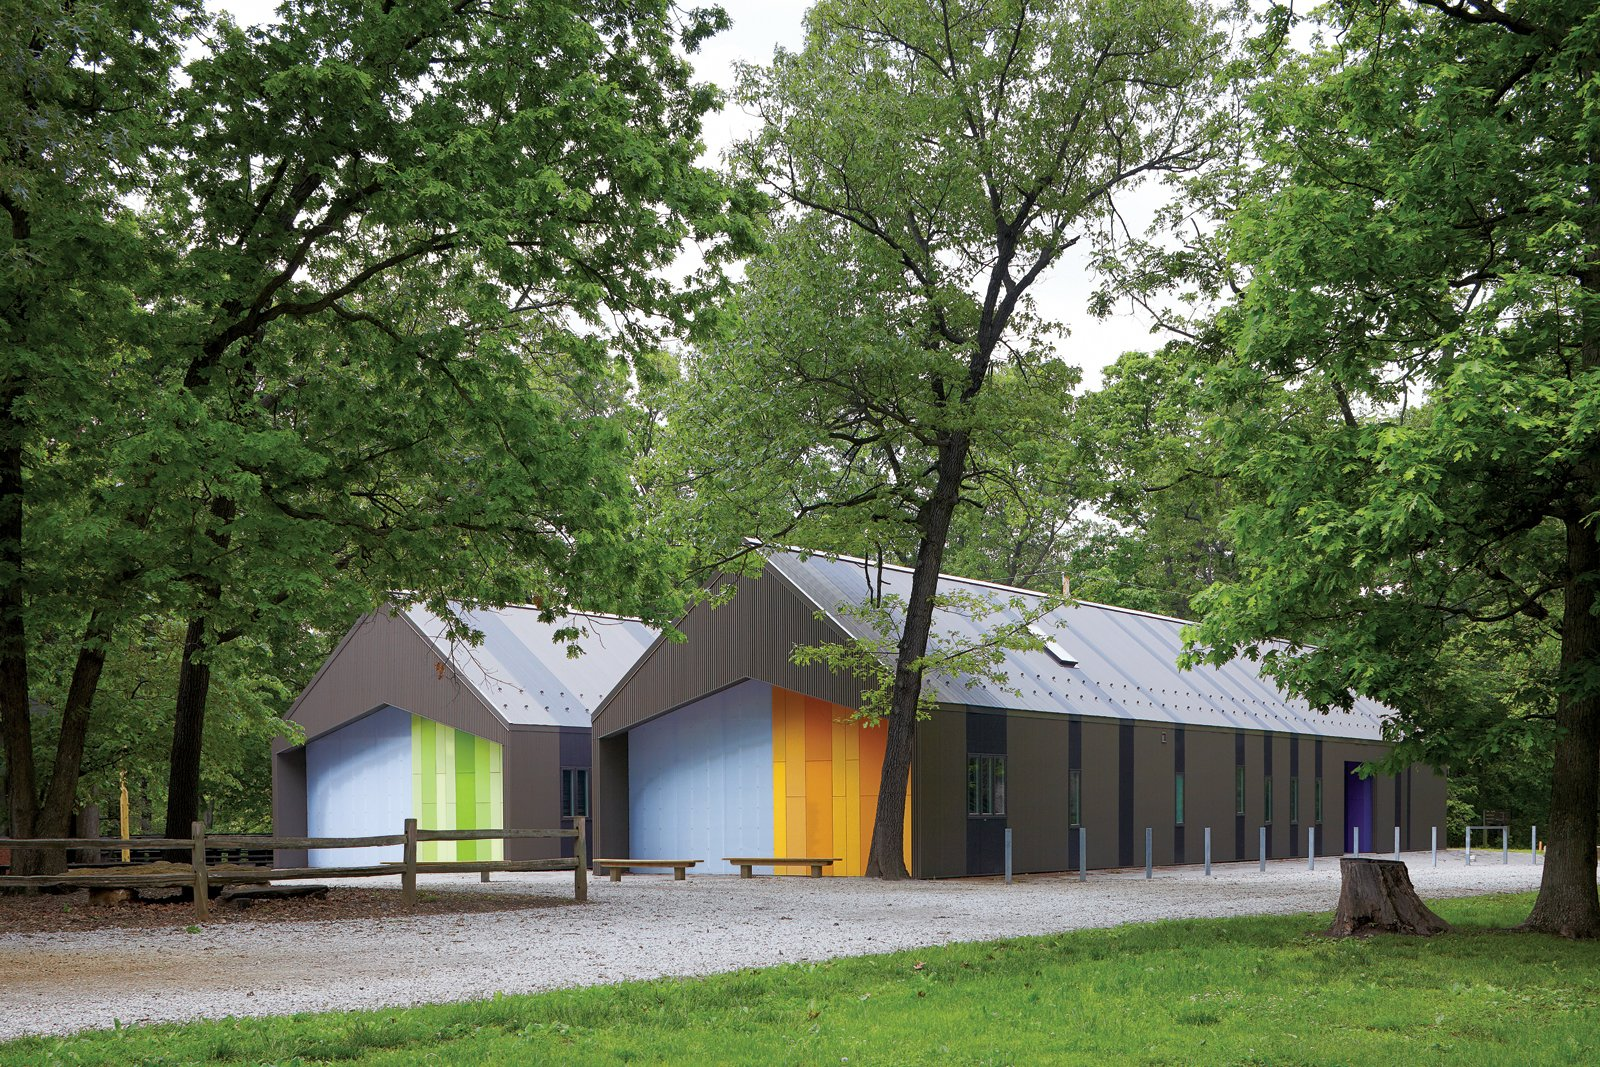 The two-tone corrugated metal cladding helps the sheds blend into the landscape, along with windows custom-colored by the manufacturer to match. Tagged: Exterior, Cabin Building Type, Metal Roof Material, and Gable RoofLine.  Photo 2 of 2 in Little Cabins on the Prairie